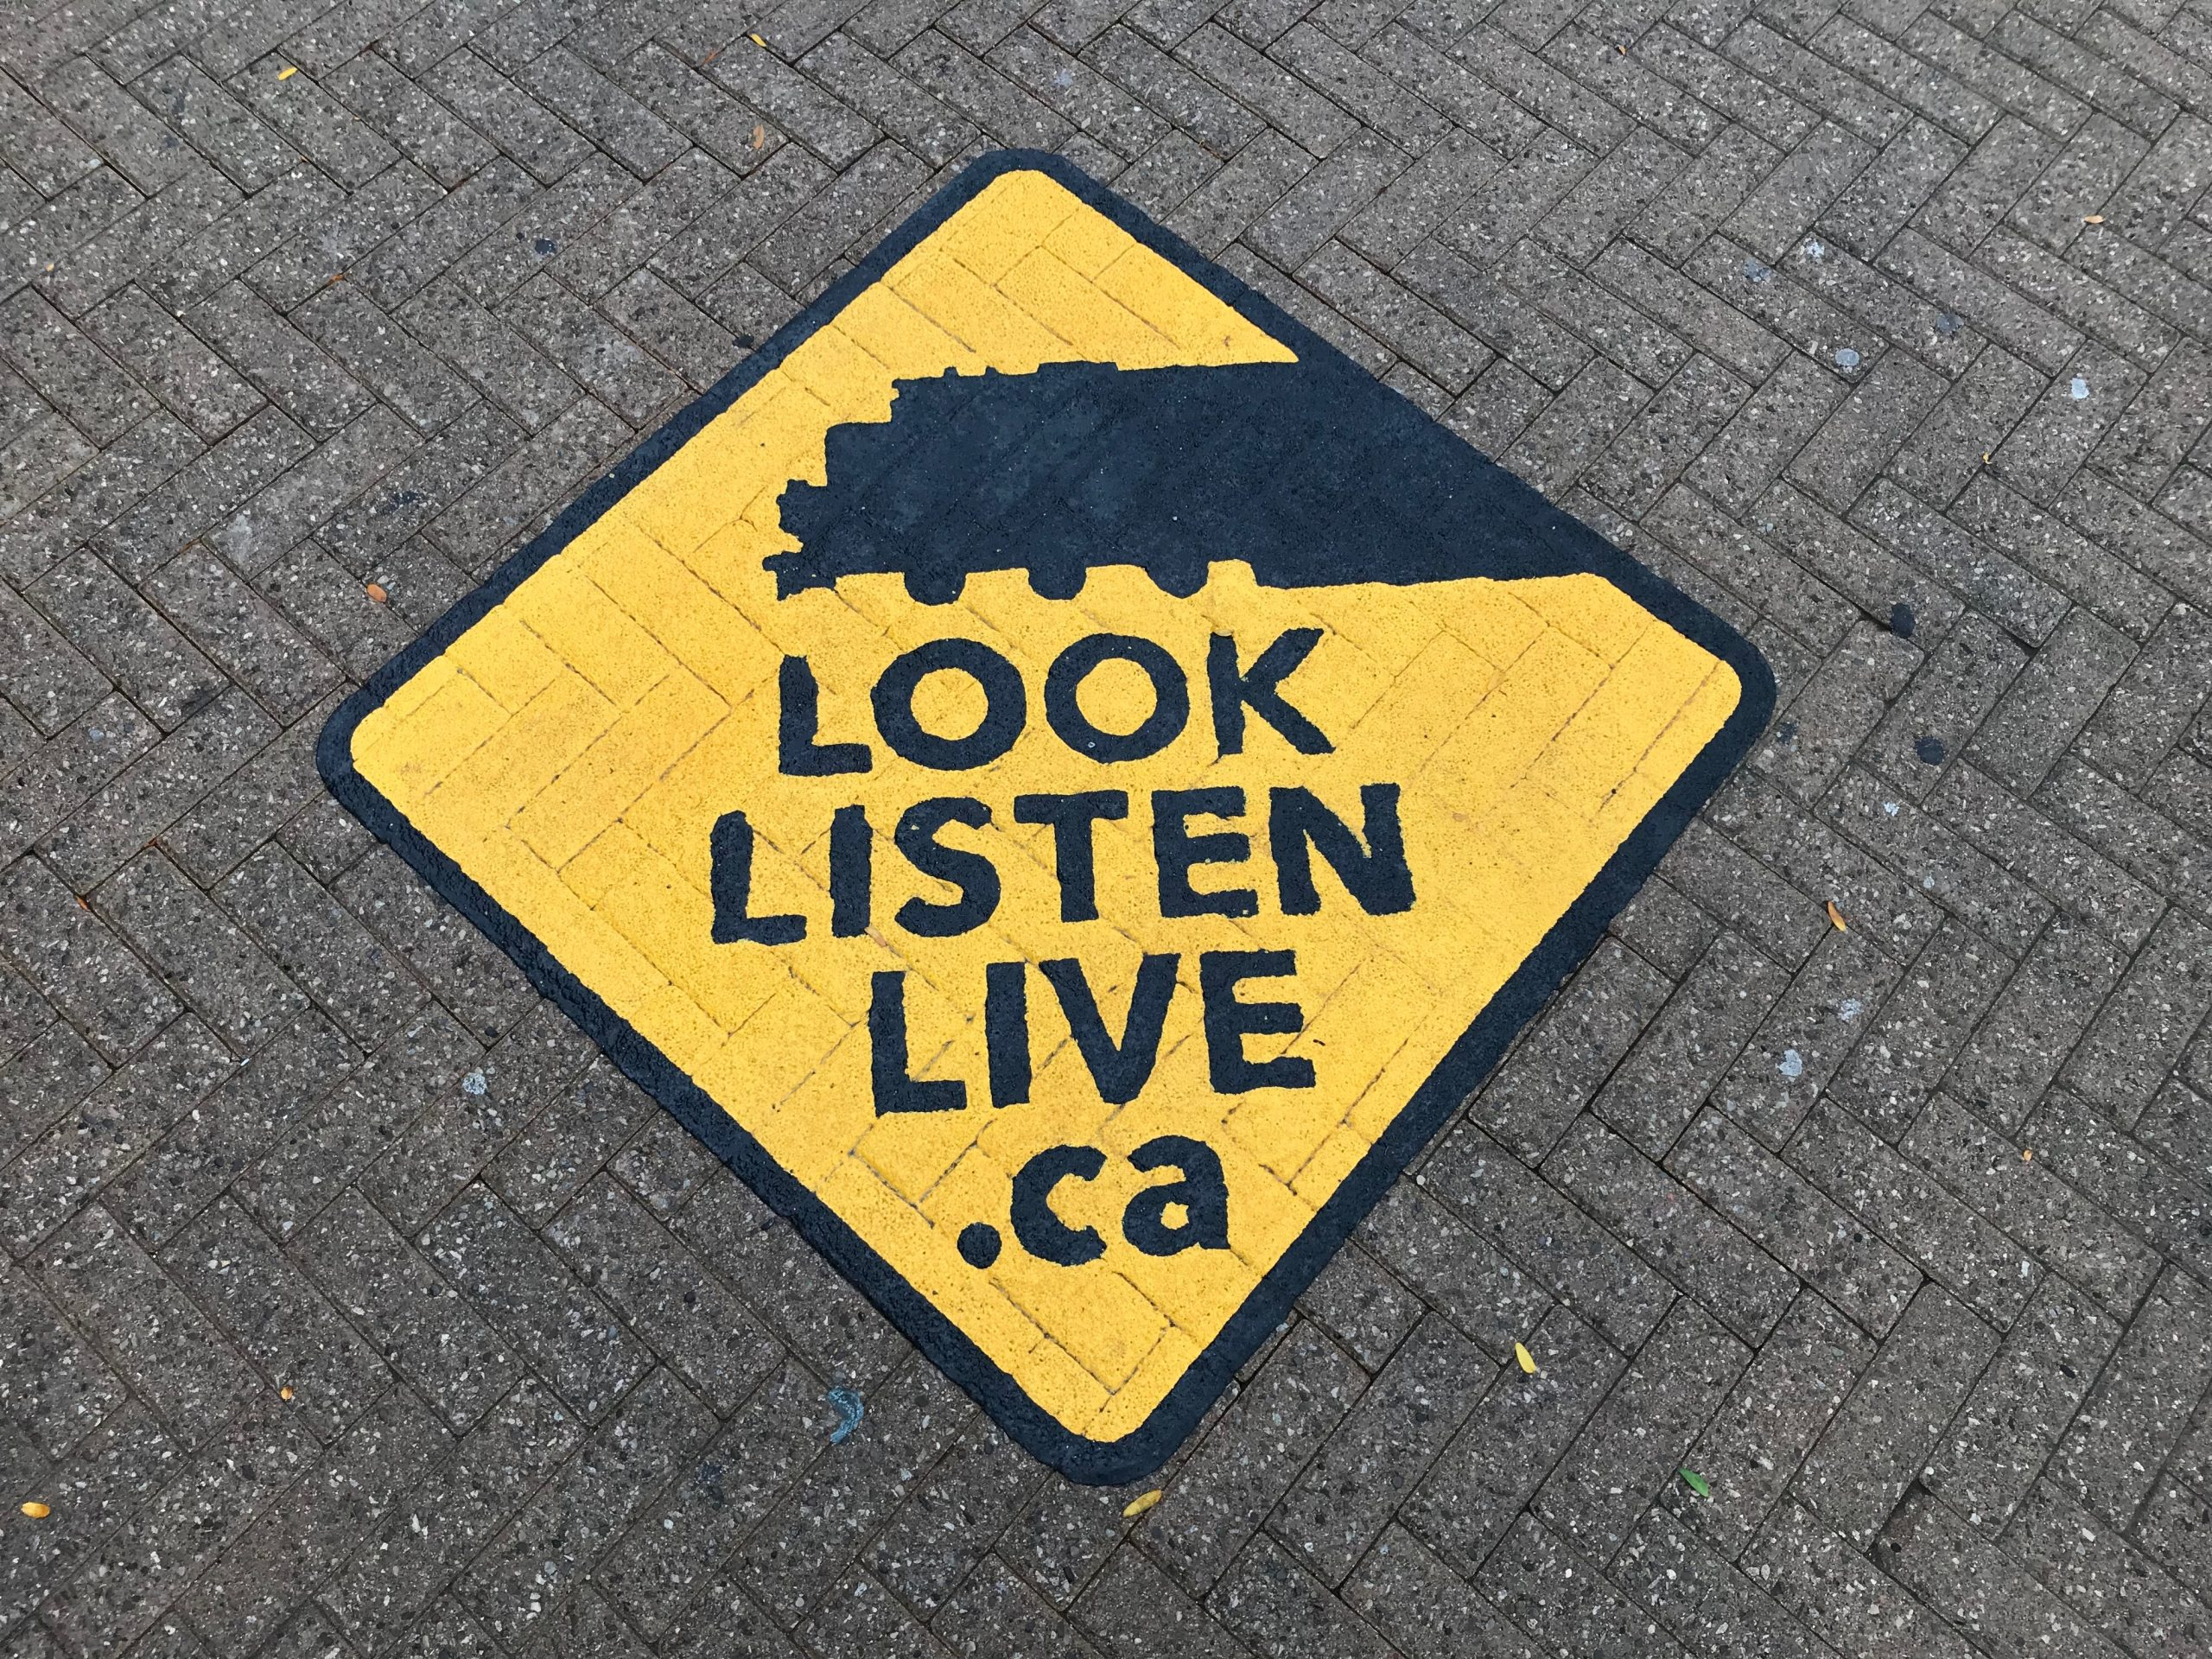 Look, Listen, Live aims to prevent railway crossing tragedies